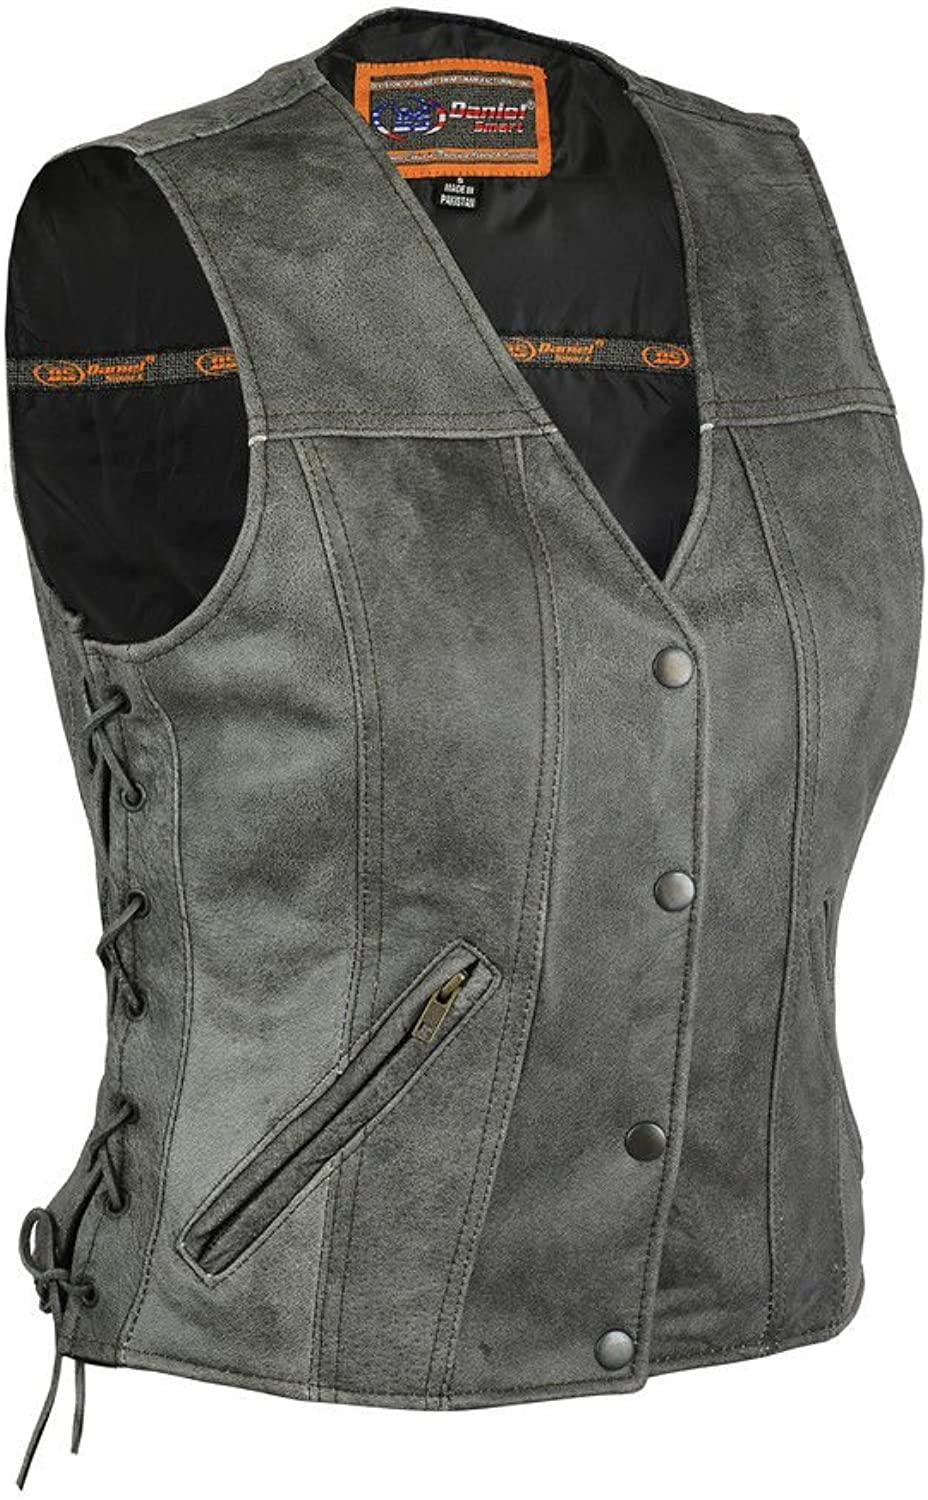 Daniel Smart Ladies Updated SWAT Team Style Vest